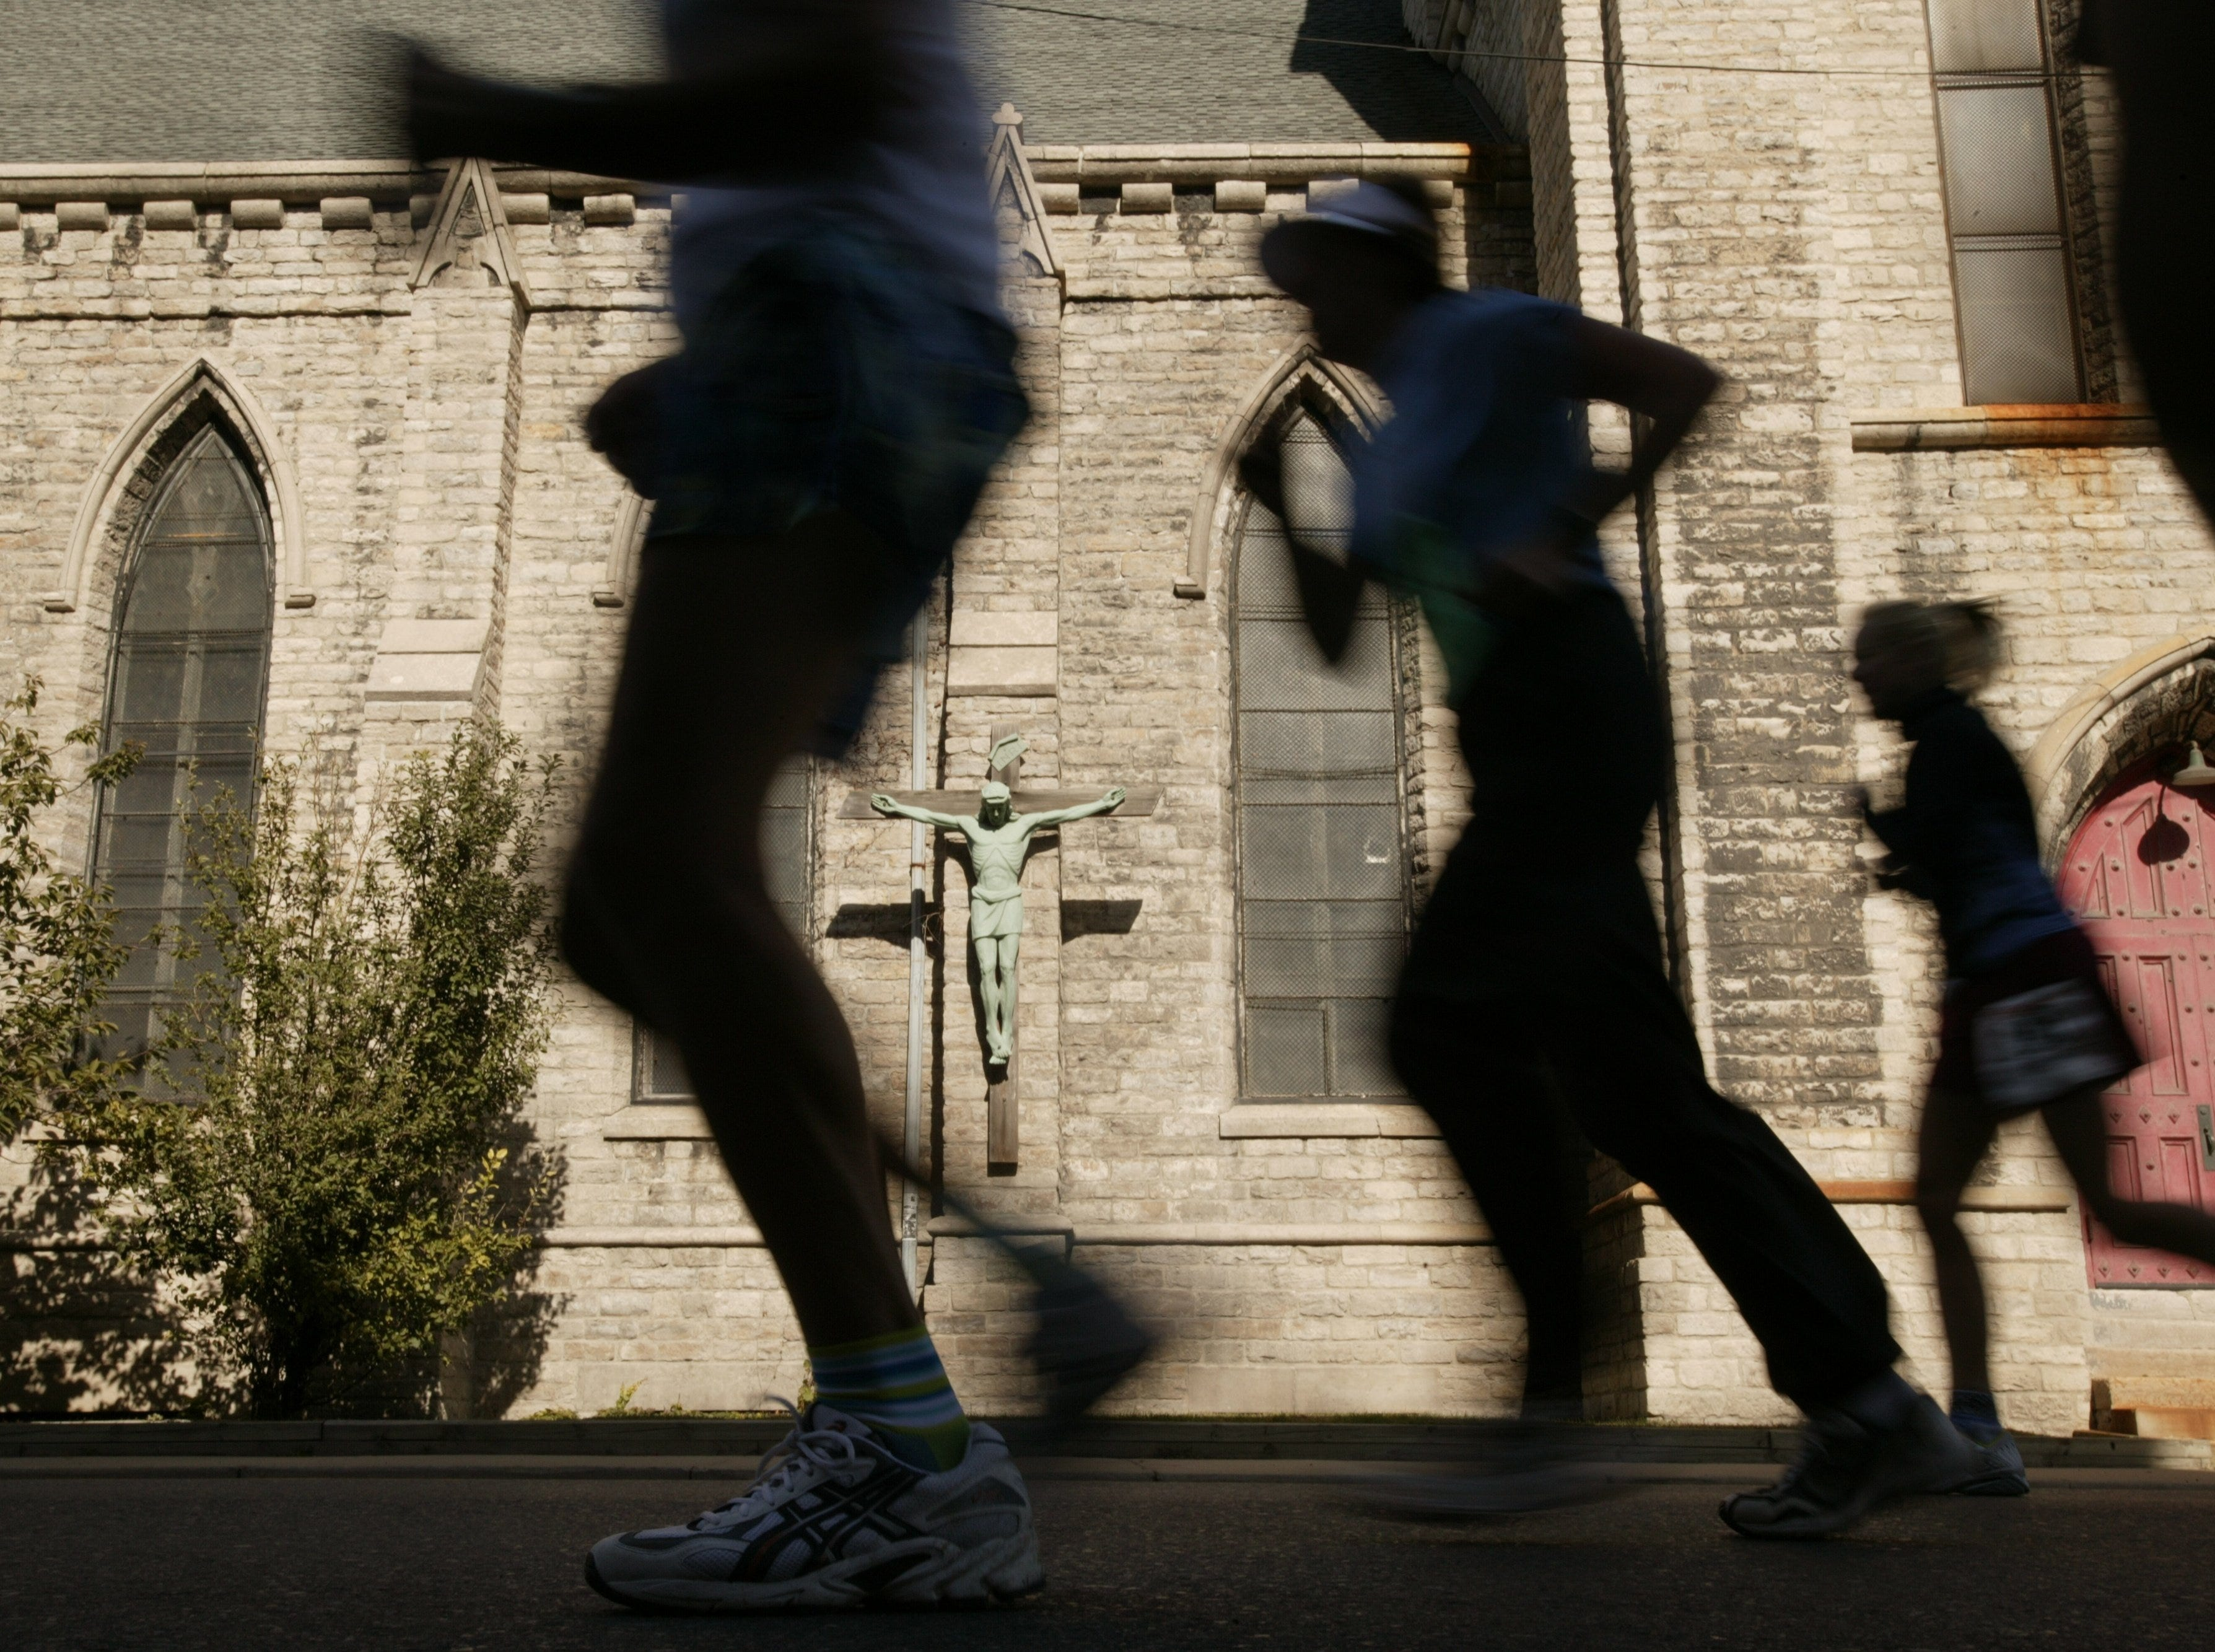 Annual Detroit Free Press/Flagstar Bank Marathon participants run on Lafayette East, near 21 mile mark, in front of Church Of The Messiah in Detroit on Sunday, October 5, 2003.